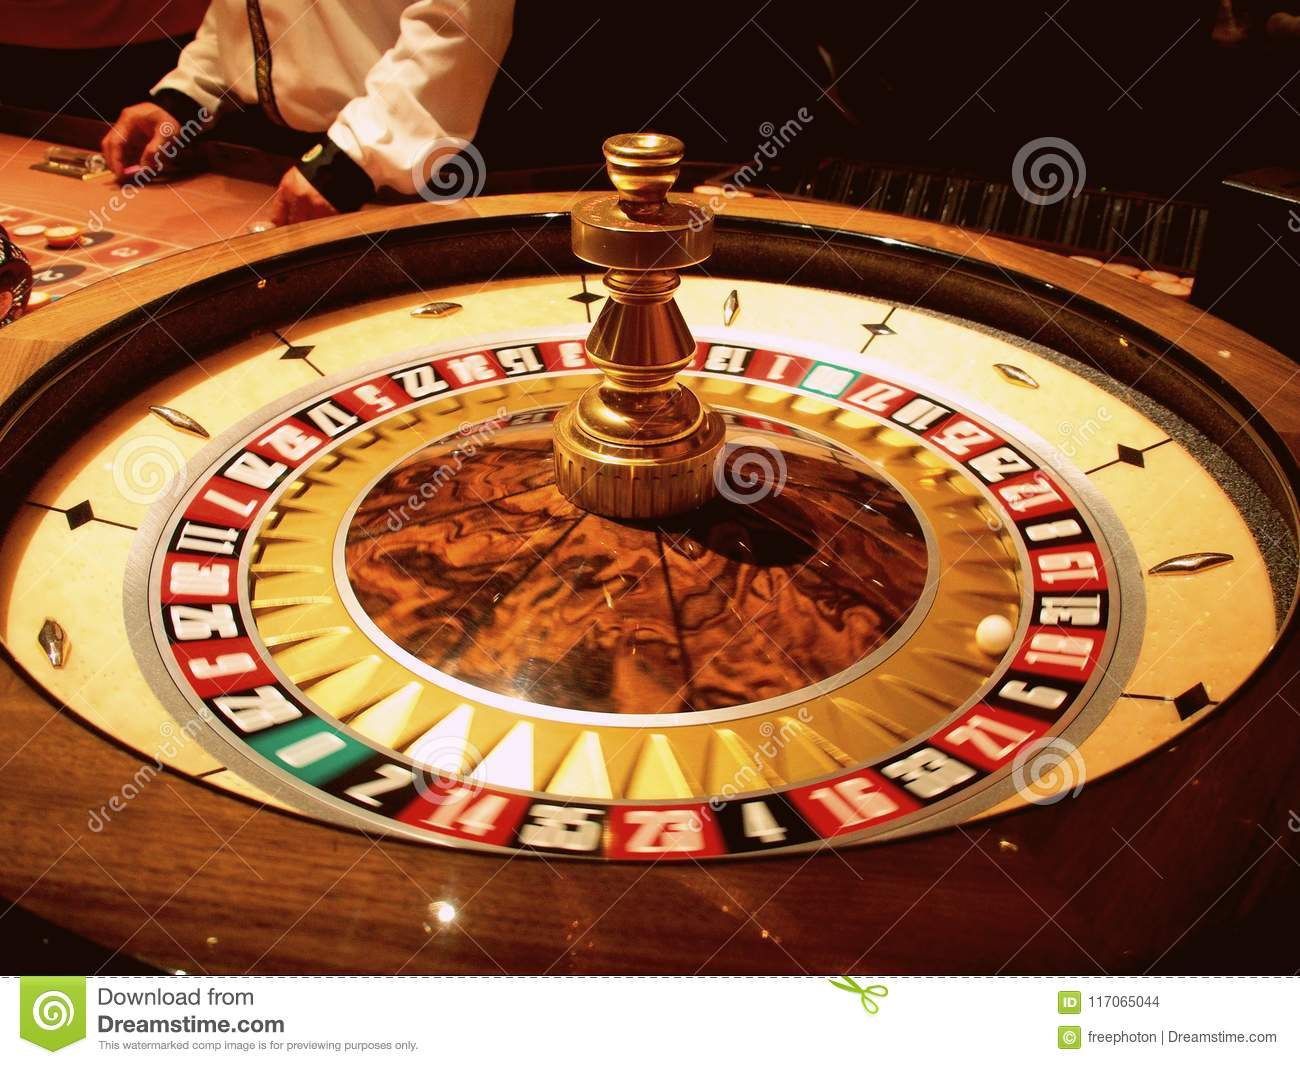 Roulette In Las Vegas Casino Stock Photo Image Of Authentic